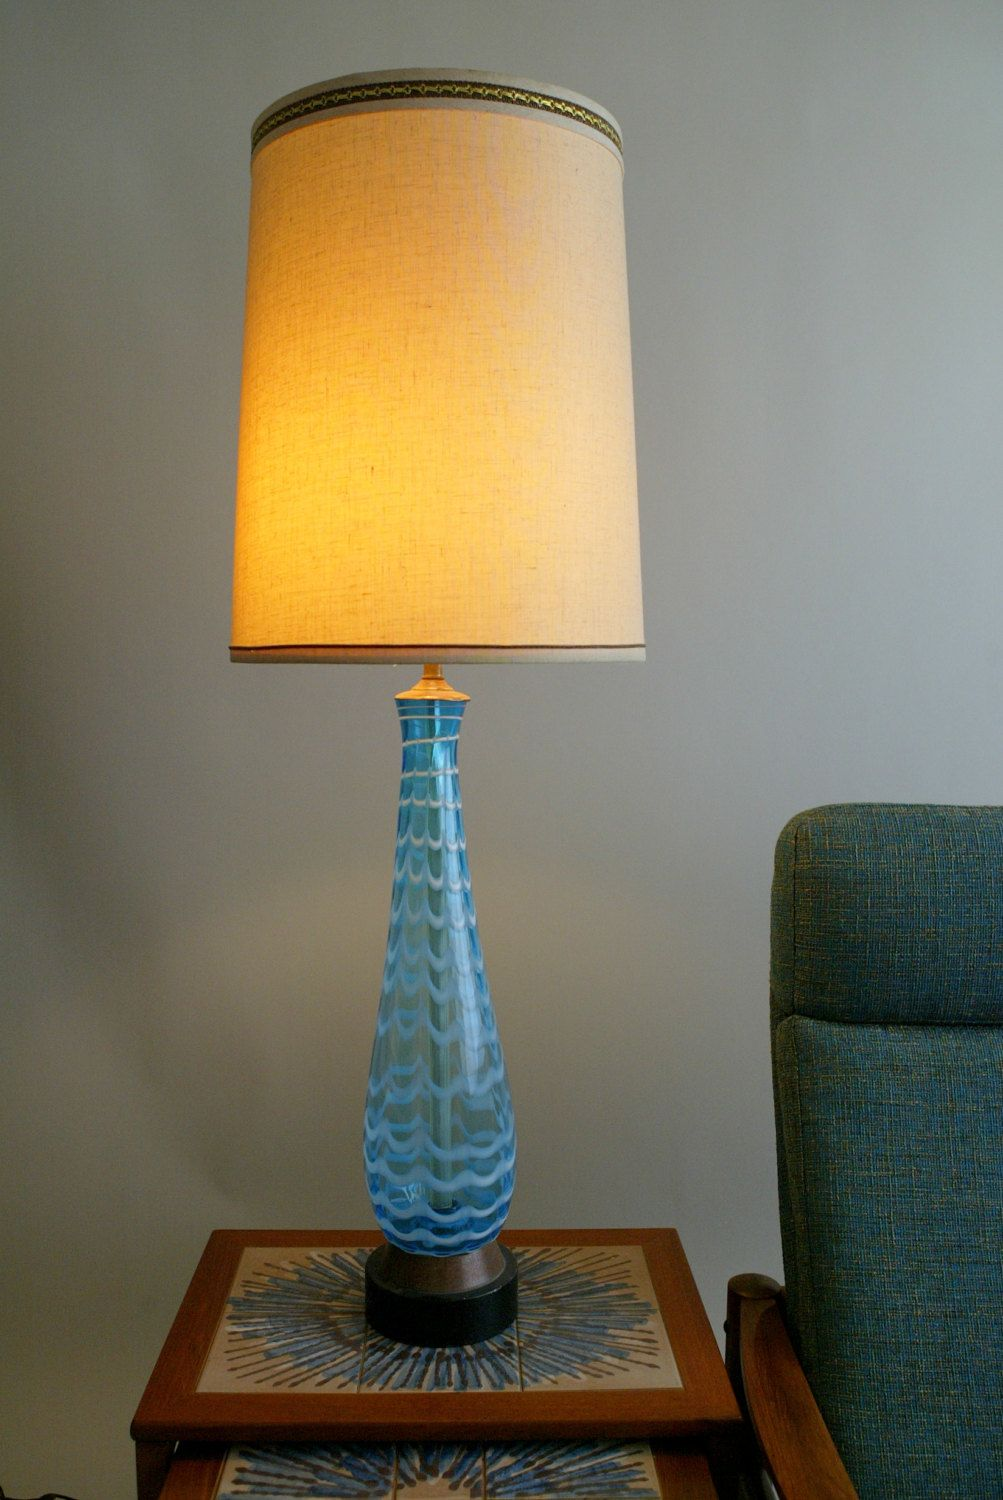 Blown glass table lamps - Items Similar To Huge Mid Century Italian Swirled Glass Table Lamp Very Tall Delicate Vintage Murano Italy Blown Glass Lighting Gorgeous Blue White